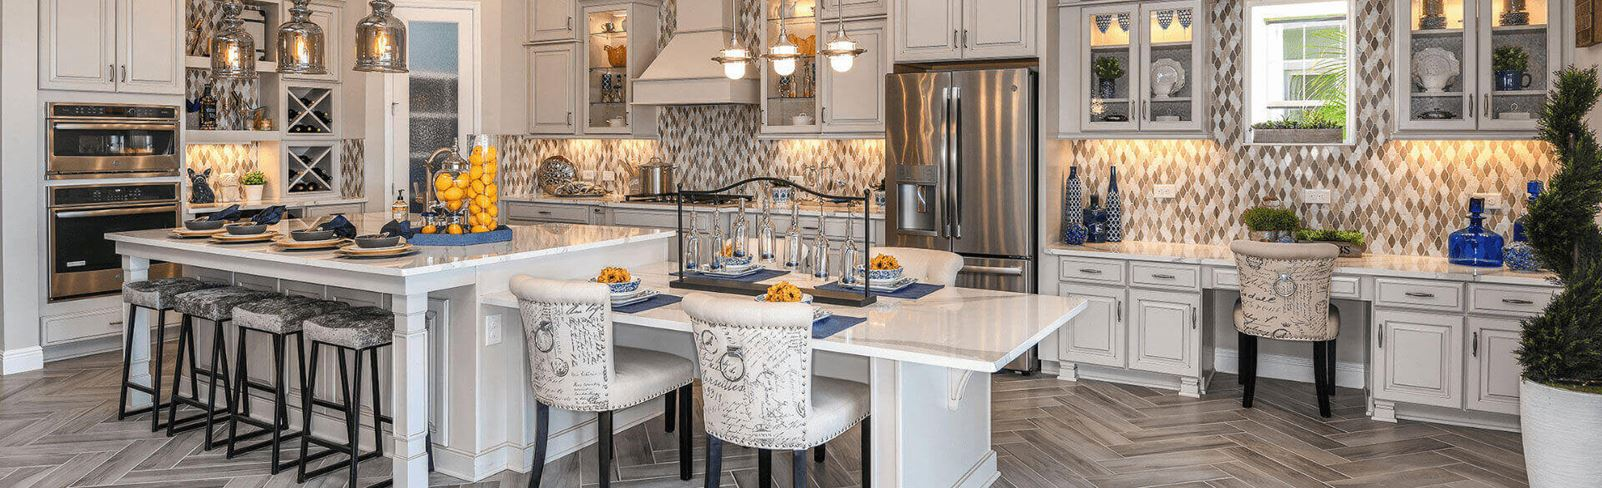 Spacious kitchen with island in the Bayshore model home in Waterset.